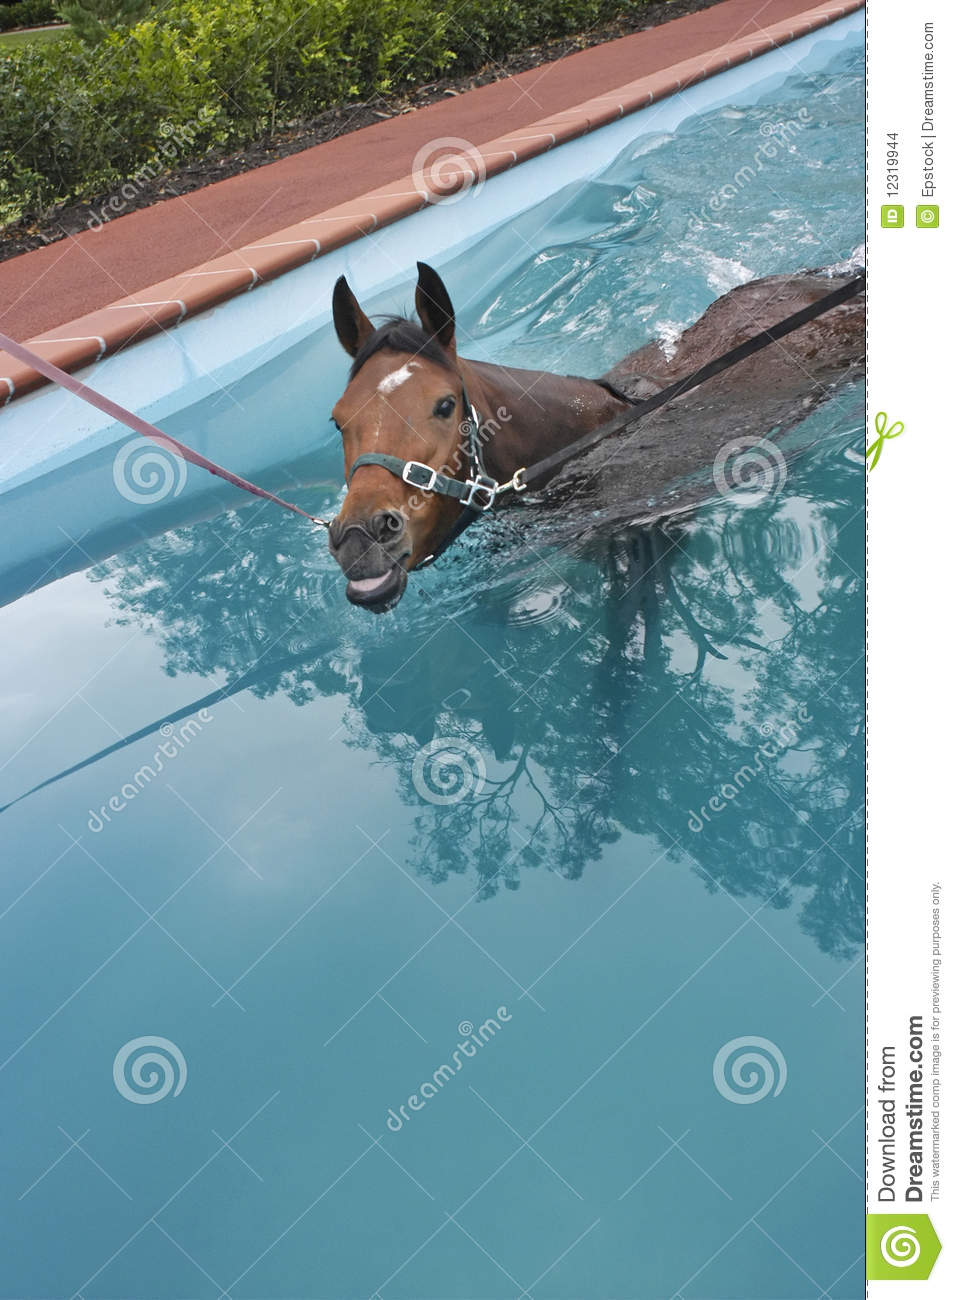 Horse aquatic training stock images image 12319944 for Negative show pool horse racing